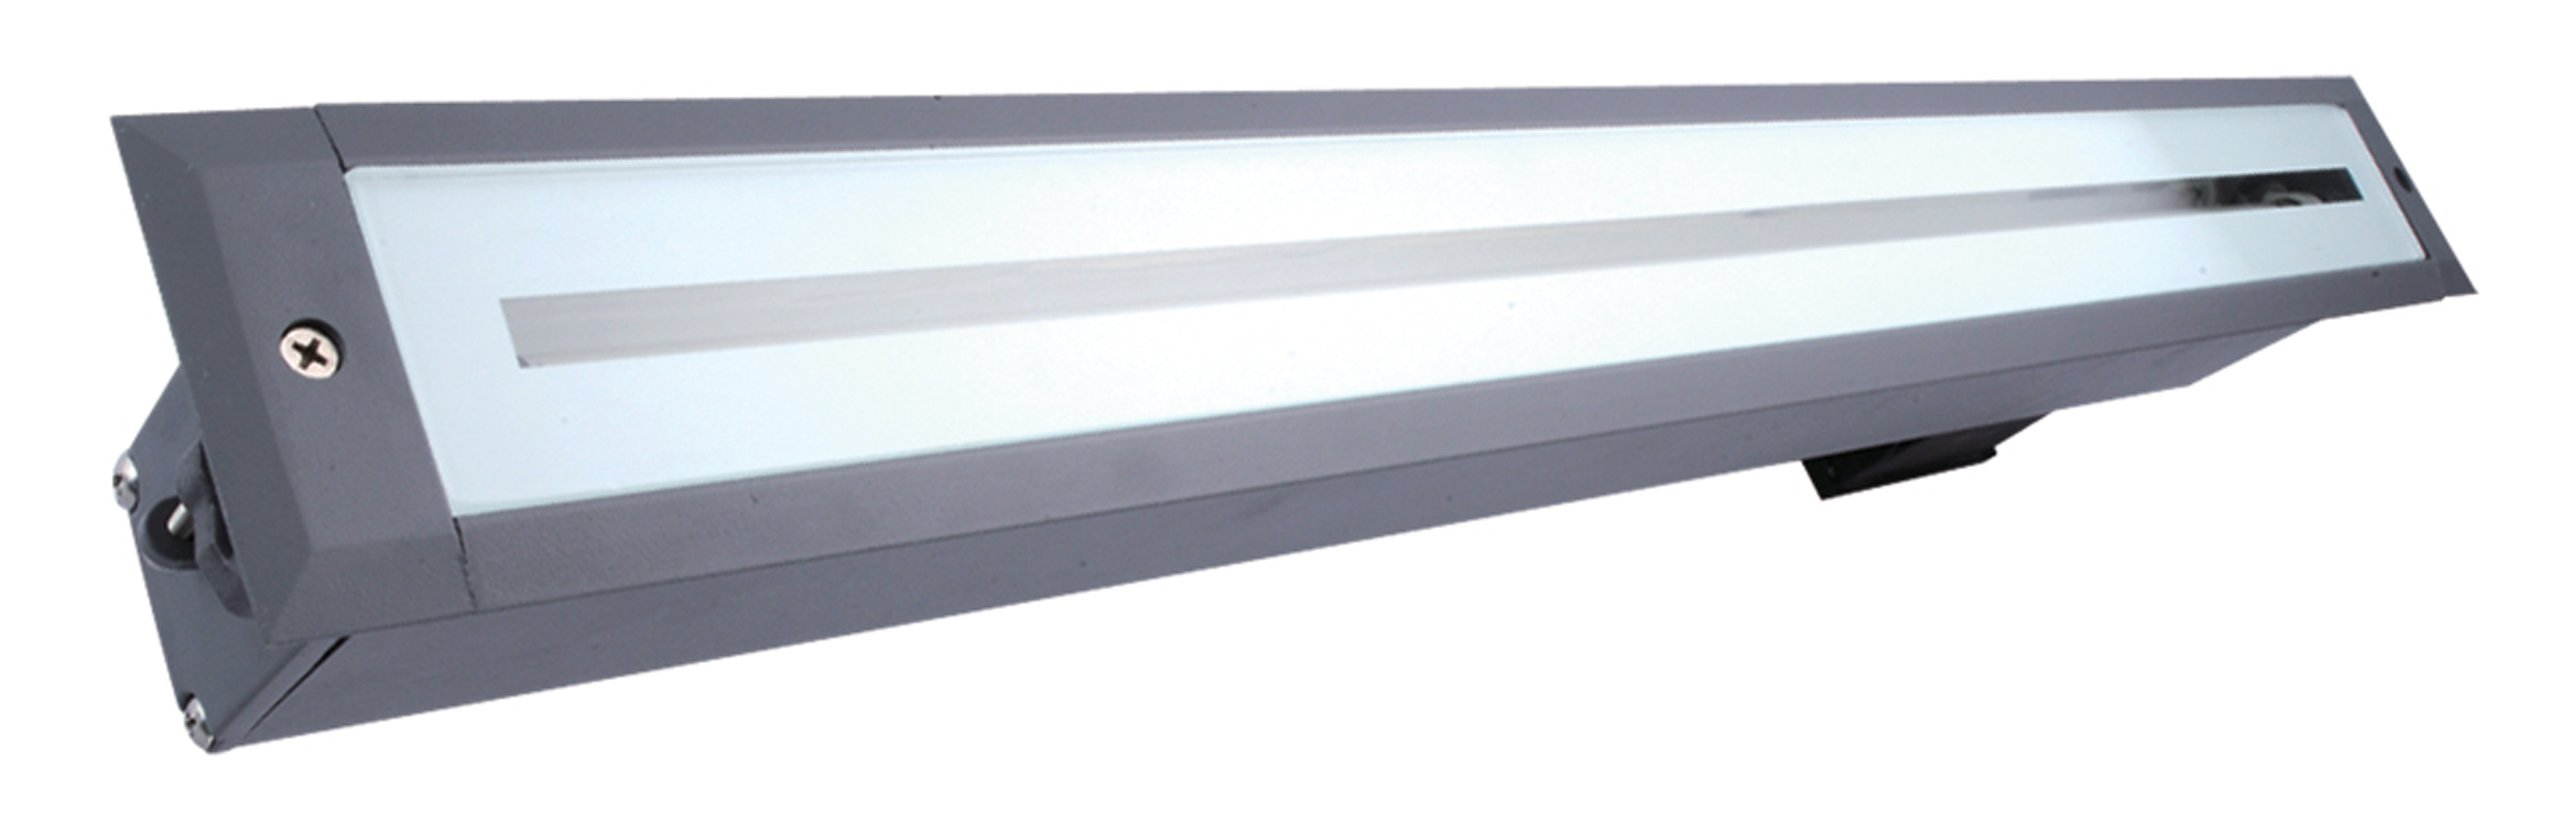 Eurofase 19550-015 1-Light In-Ground T5 14W Linear Up Light, Grey